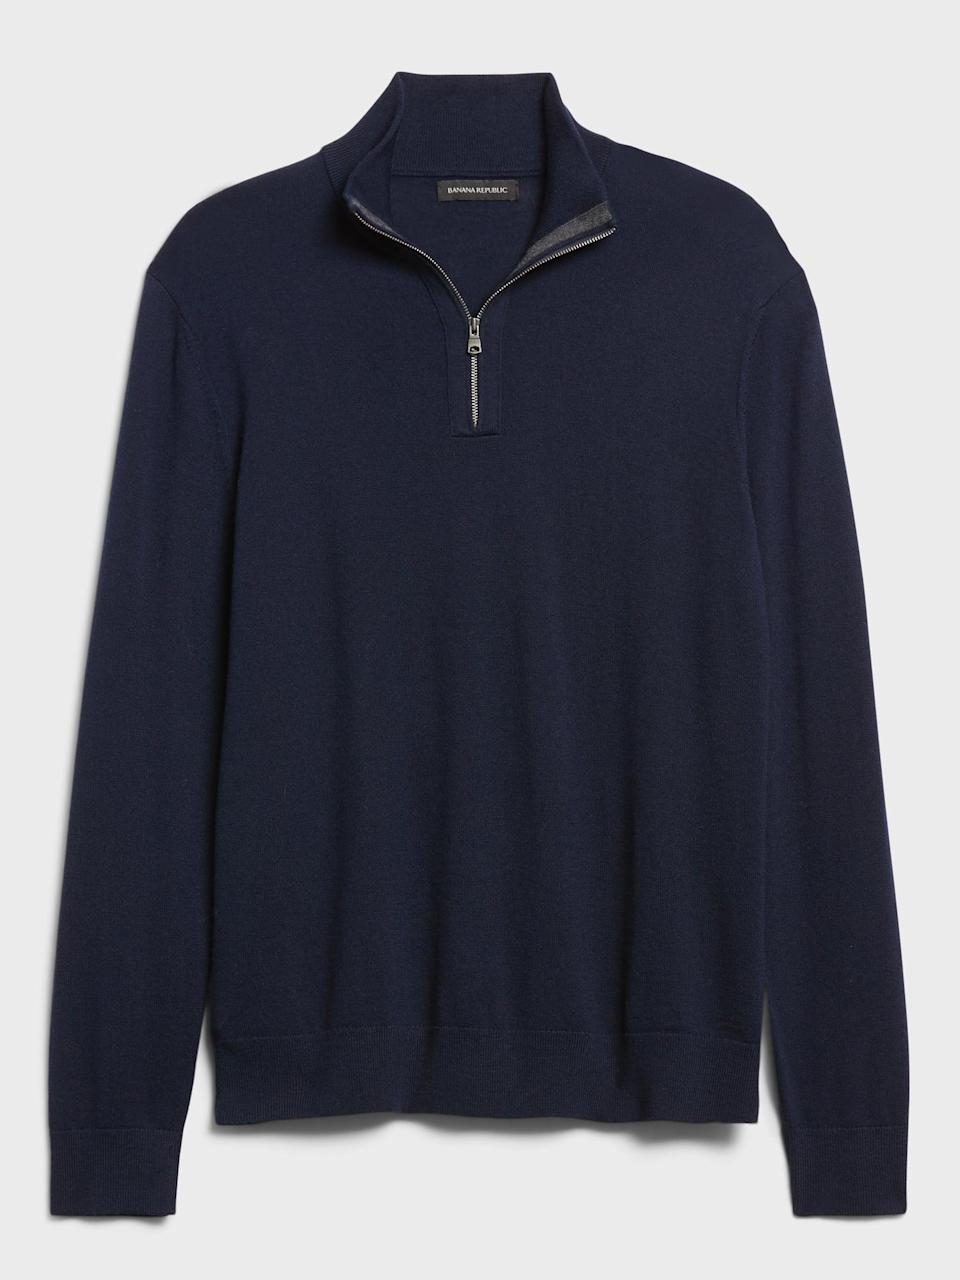 <p>And for another fabric and weight option, try the <span>Banana Republic Merino Half-Zip Sweater</span> ($89).</p>